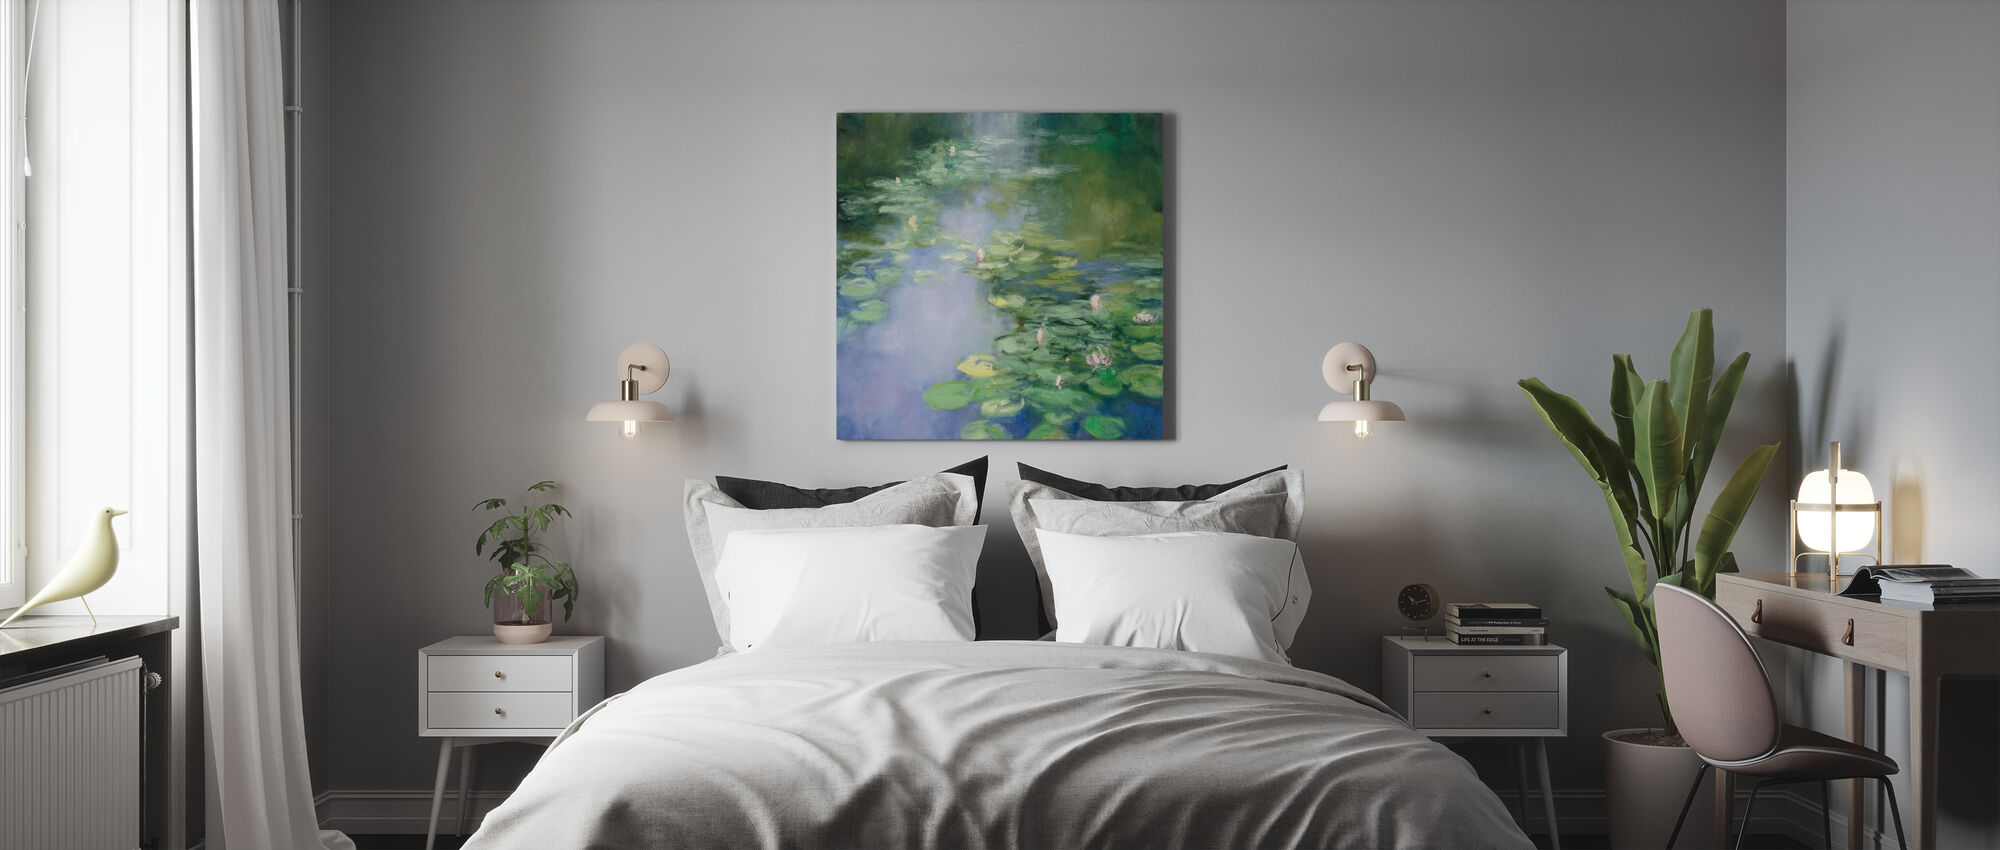 Blue Lily II - Canvas print - Bedroom